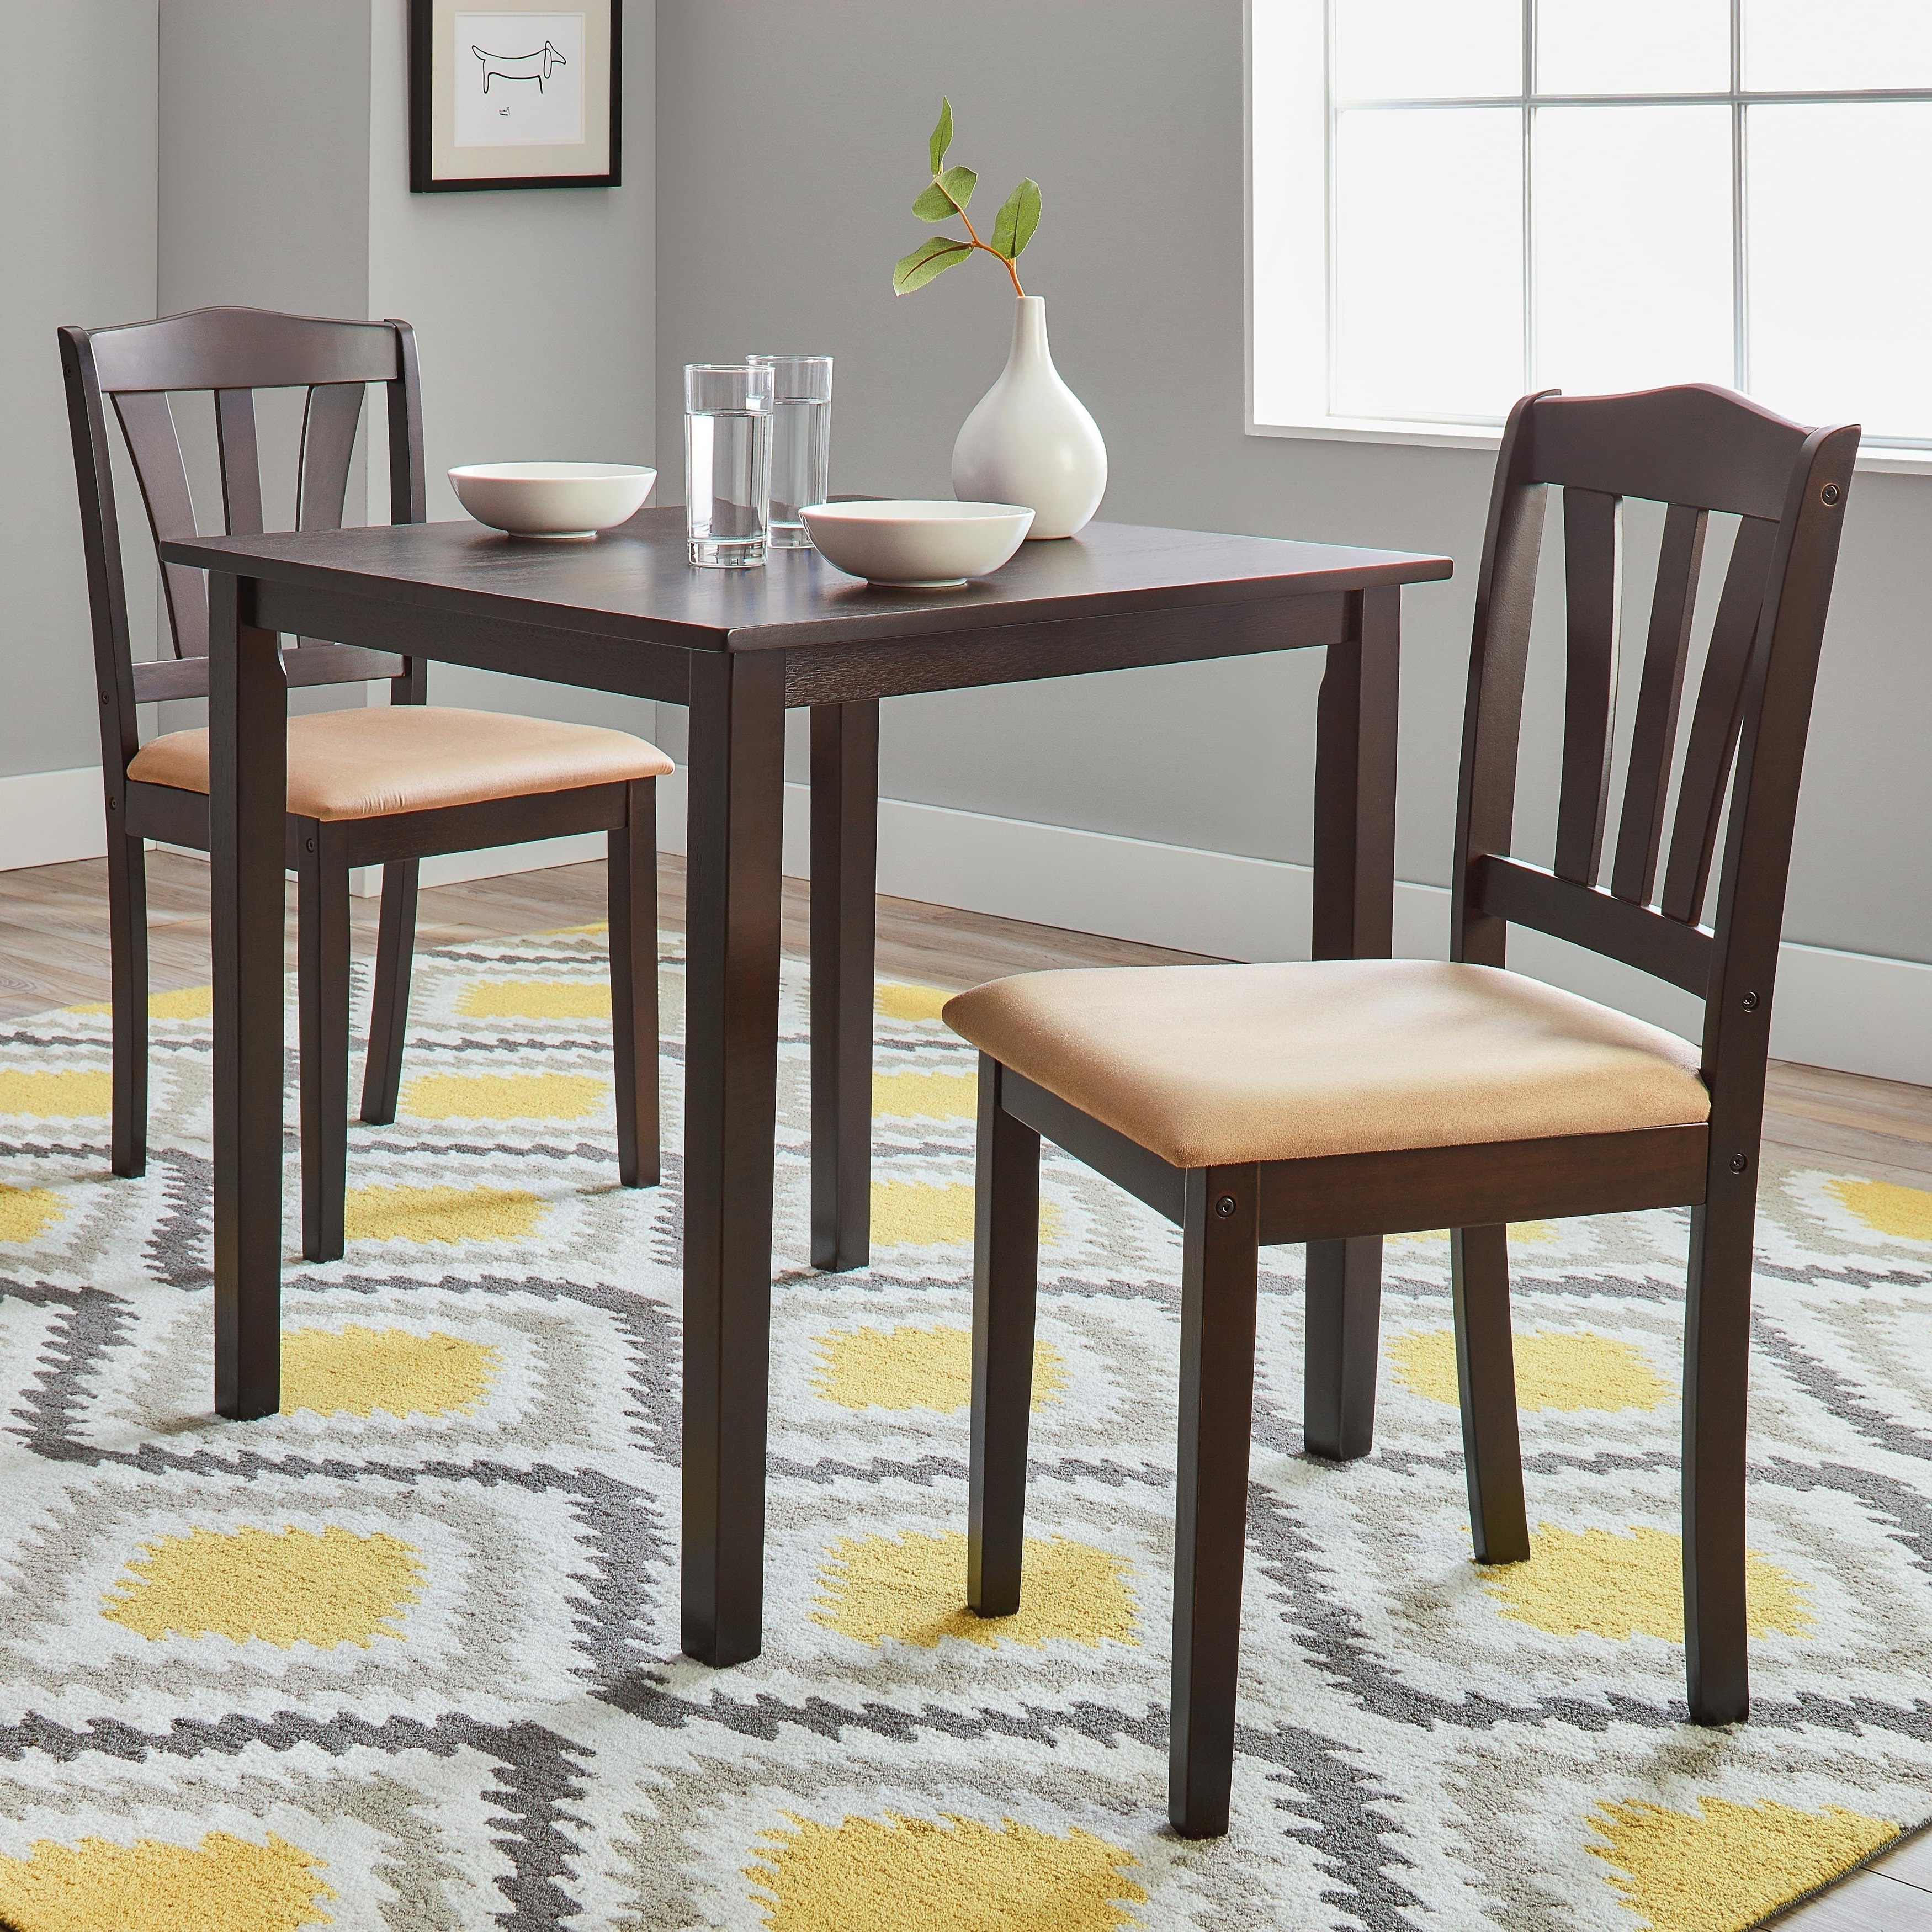 Frida 3 Piece Dining Table Sets Inside Famous Buy 3 Piece Sets Kitchen & Dining Room Sets Online At Overstock (Gallery 8 of 20)